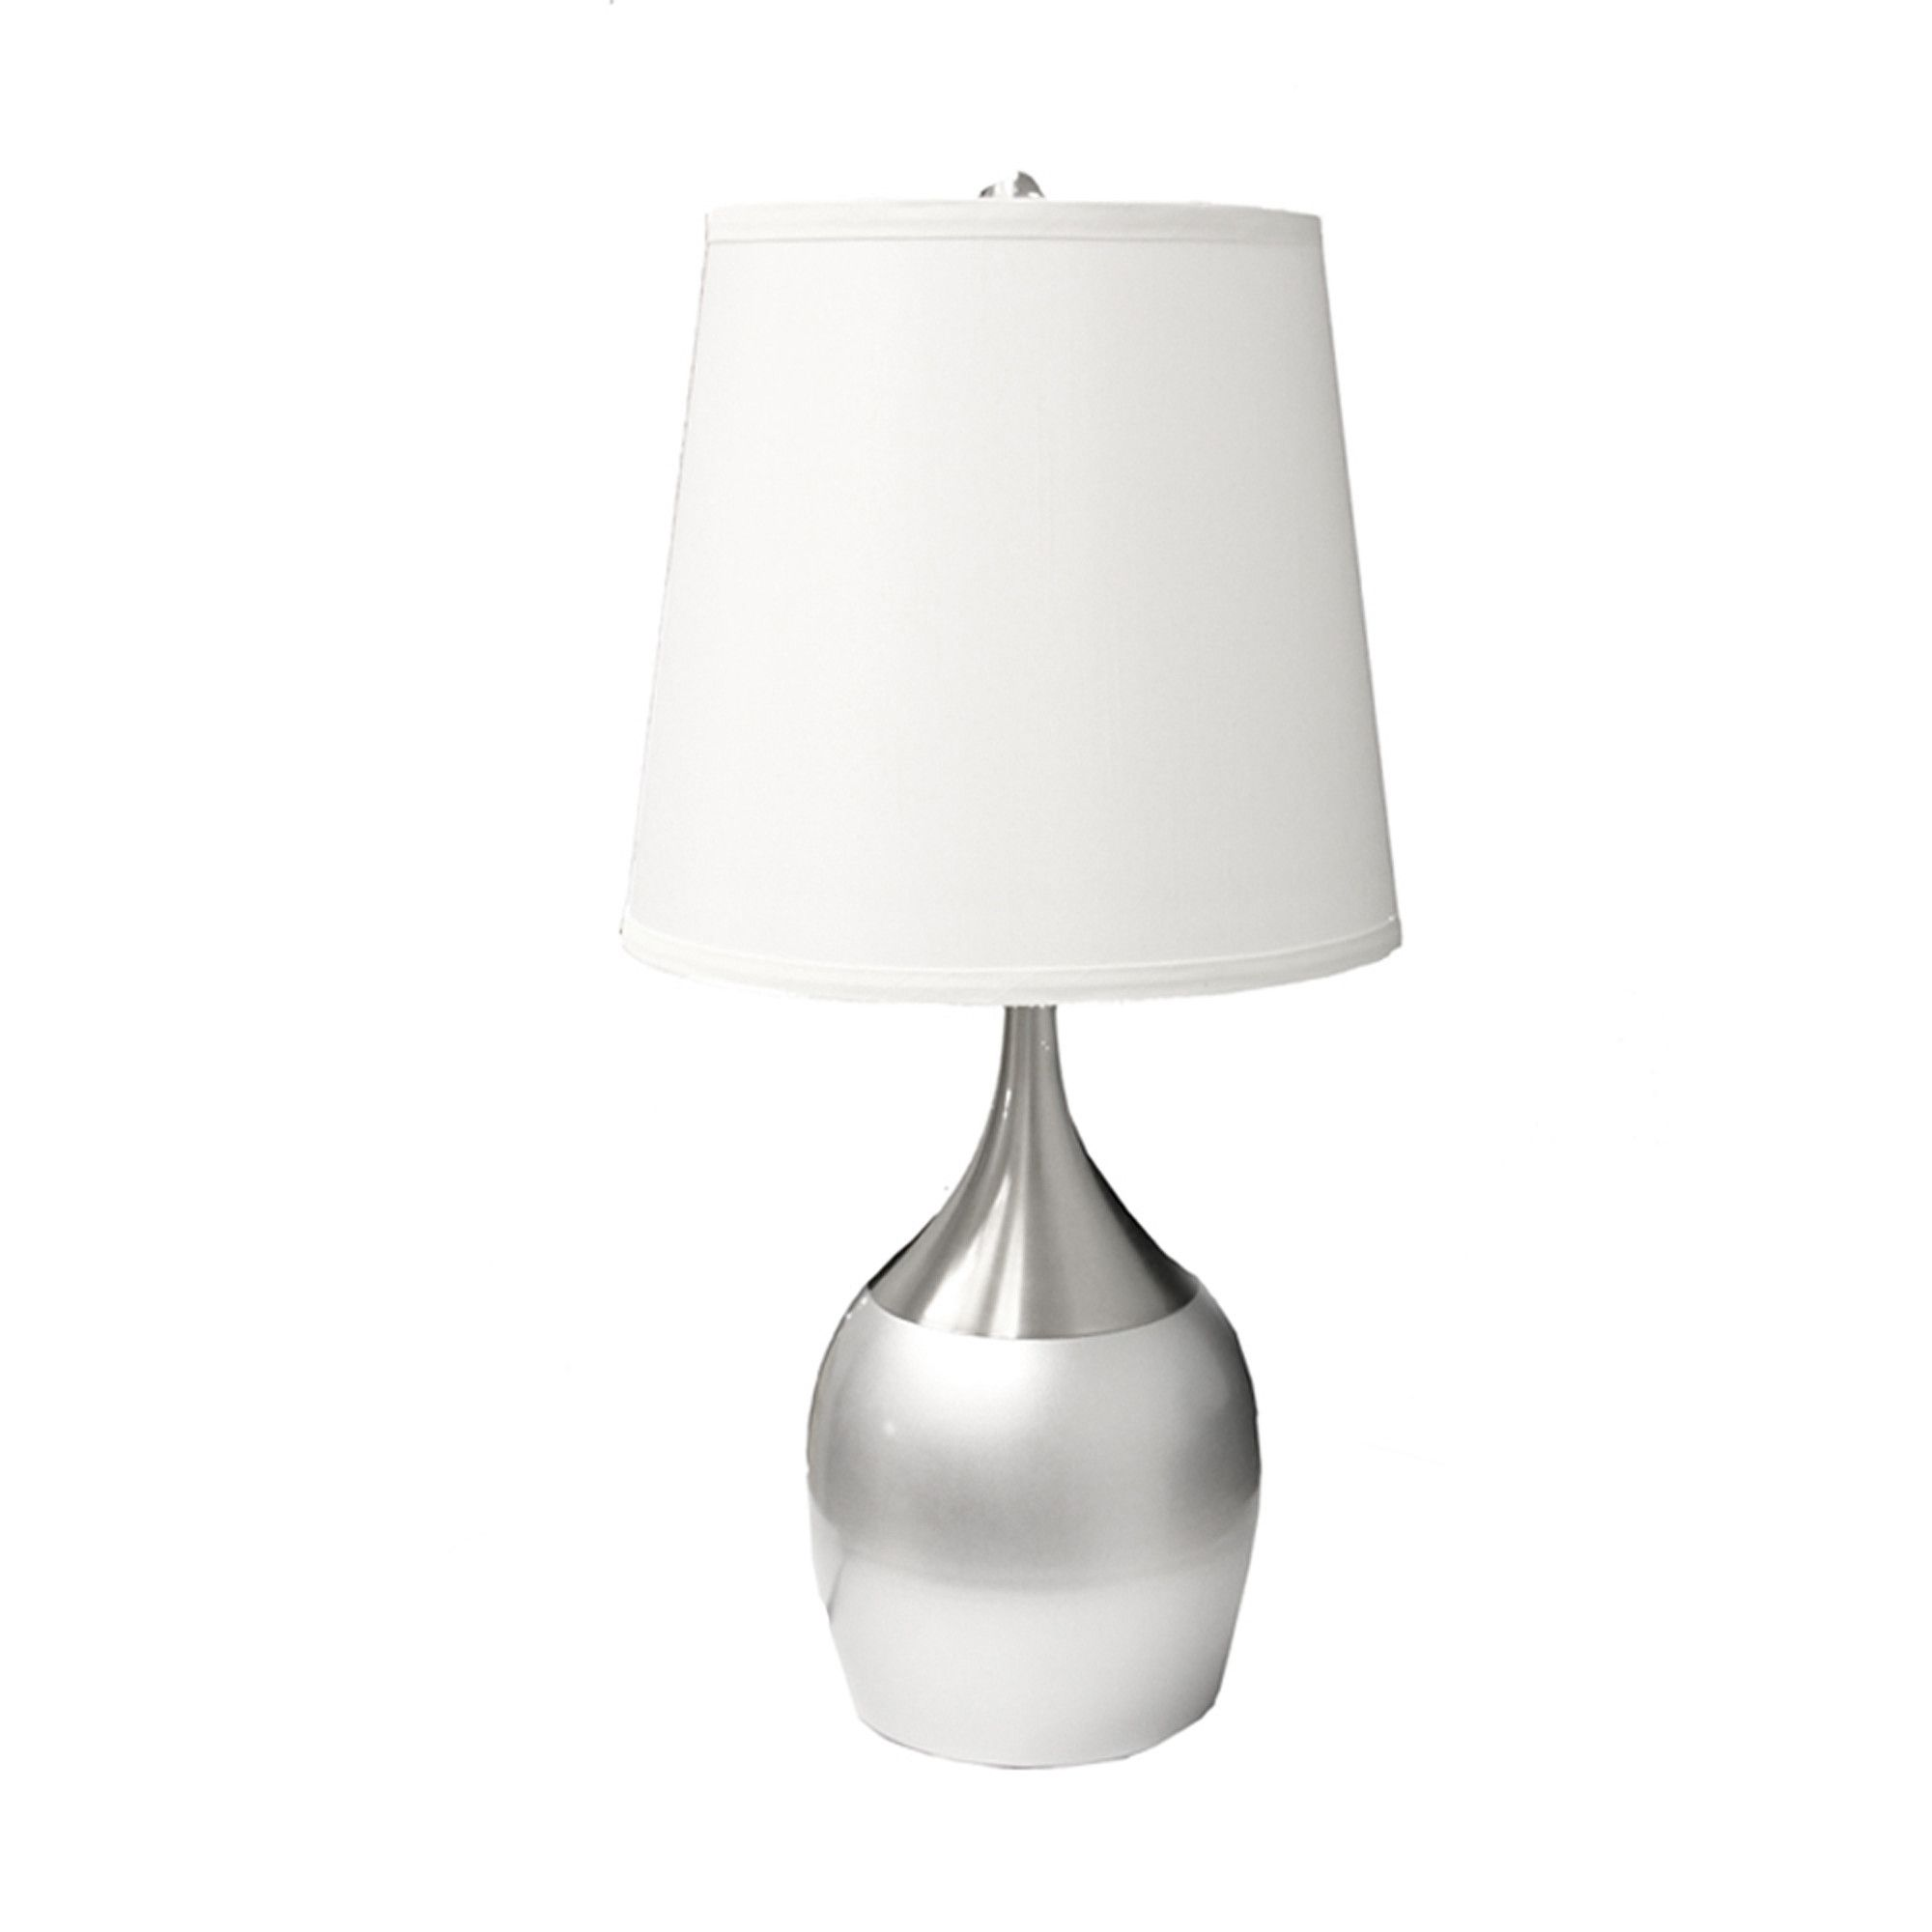 Bonaventure 25 Table Lamp Table Lamp Touch Lamp Silver Table Lamps